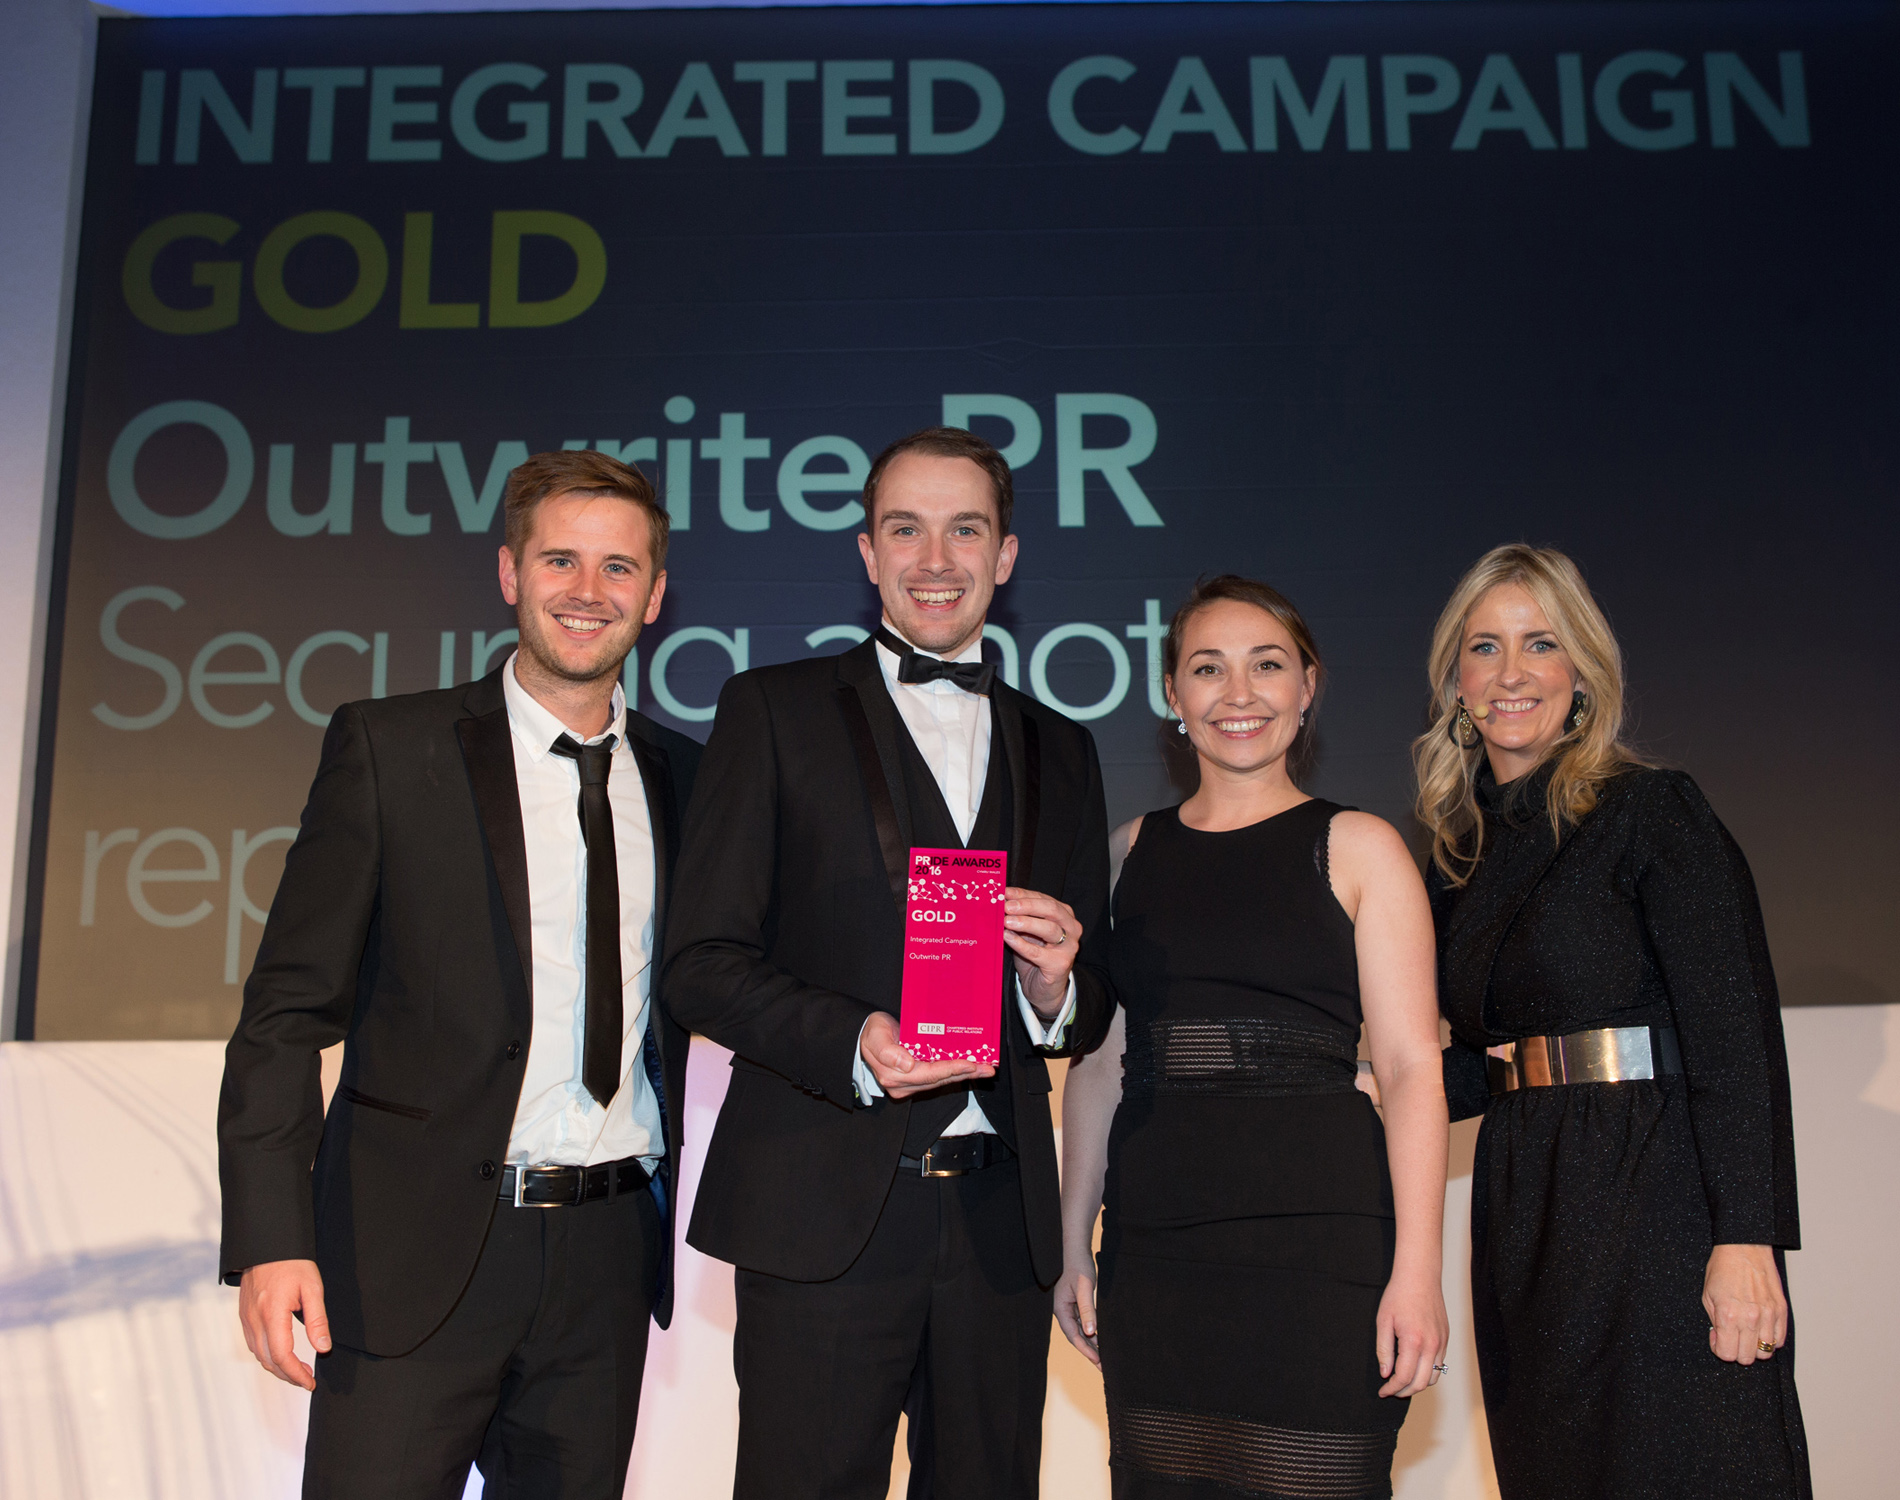 Outwrite PR won best integrated PR campaign in Wales at the CIPR awards